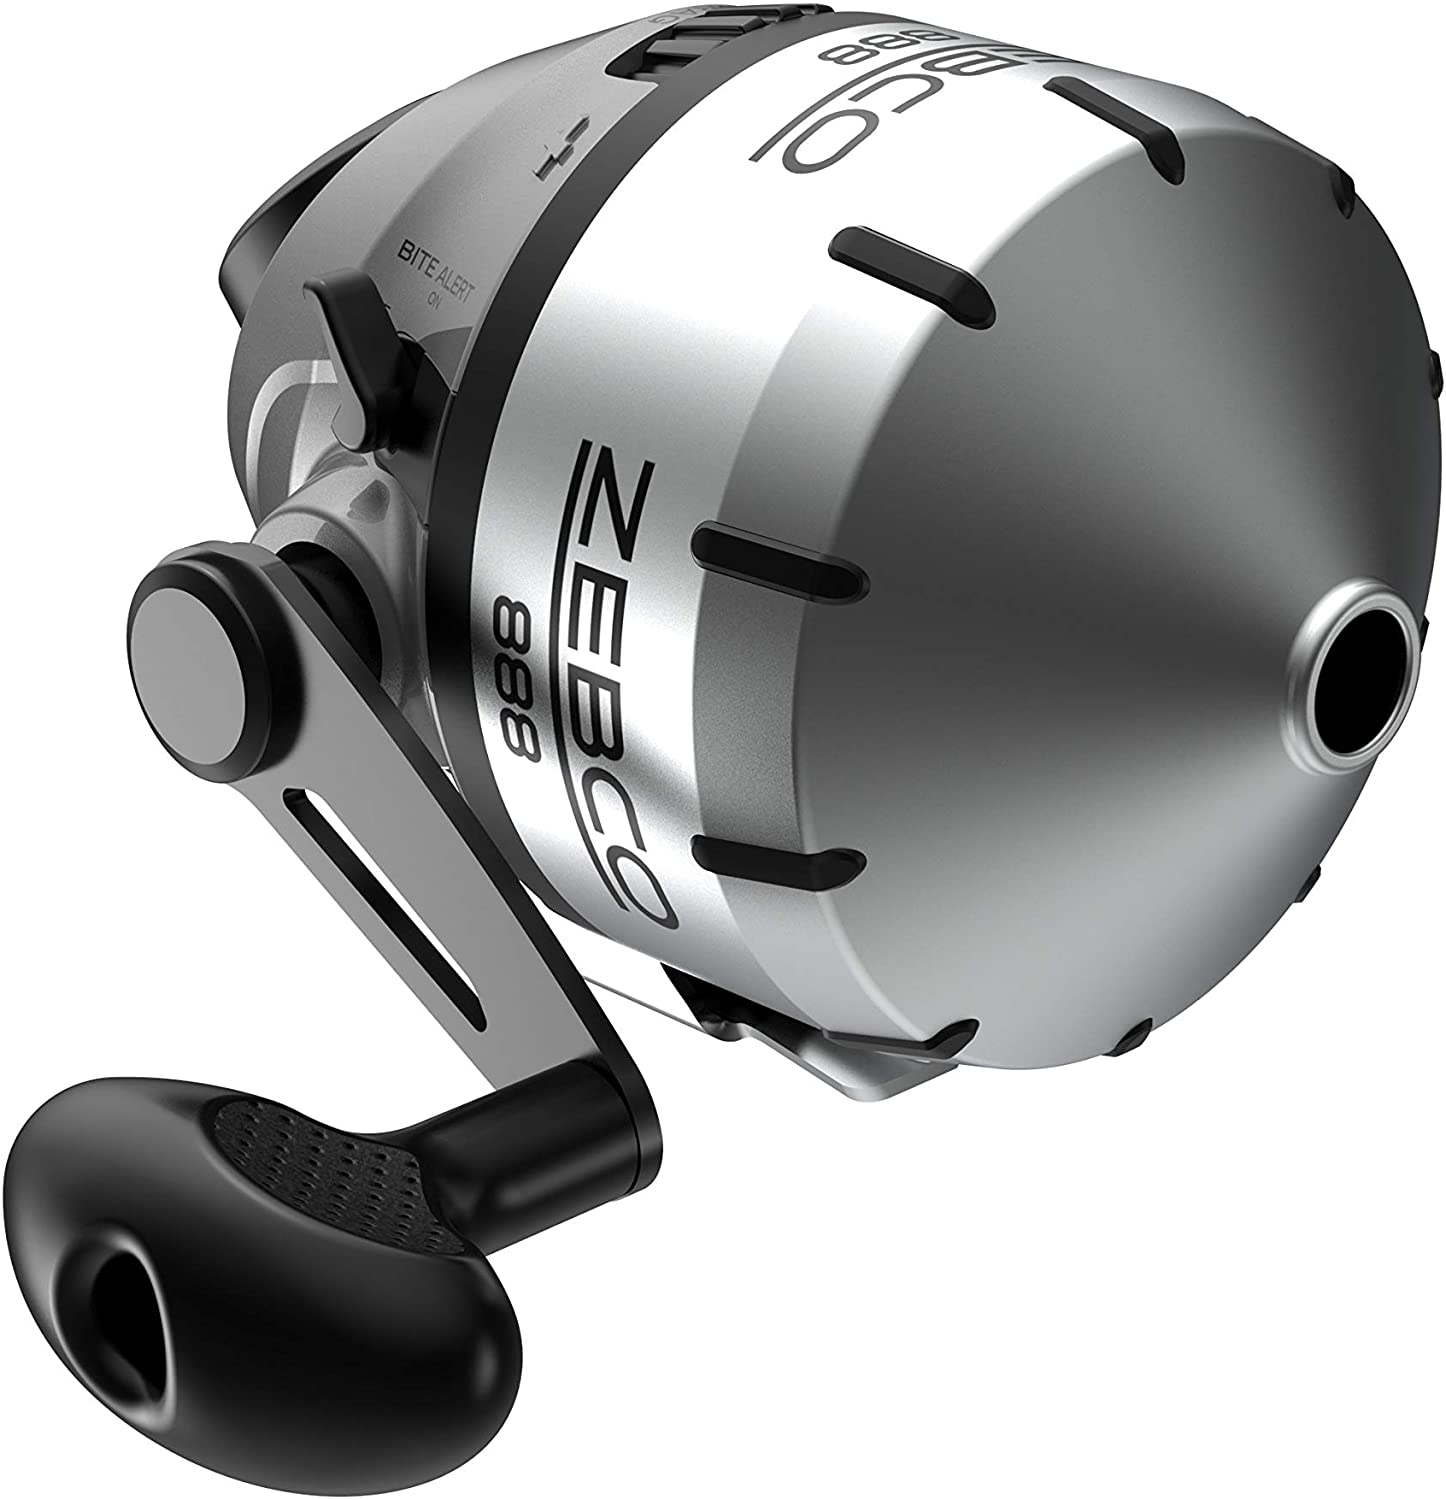 Zebco 888 Spincast Fishing Reel, 3 Bearings (2 + Clutch), Instant Anti-Reverse, Smooth Dial-Adjustable Drag, Stainless Steel Cover, Powerful All-Metal Gears, Pre-Spooled with Zebco Line, Silver